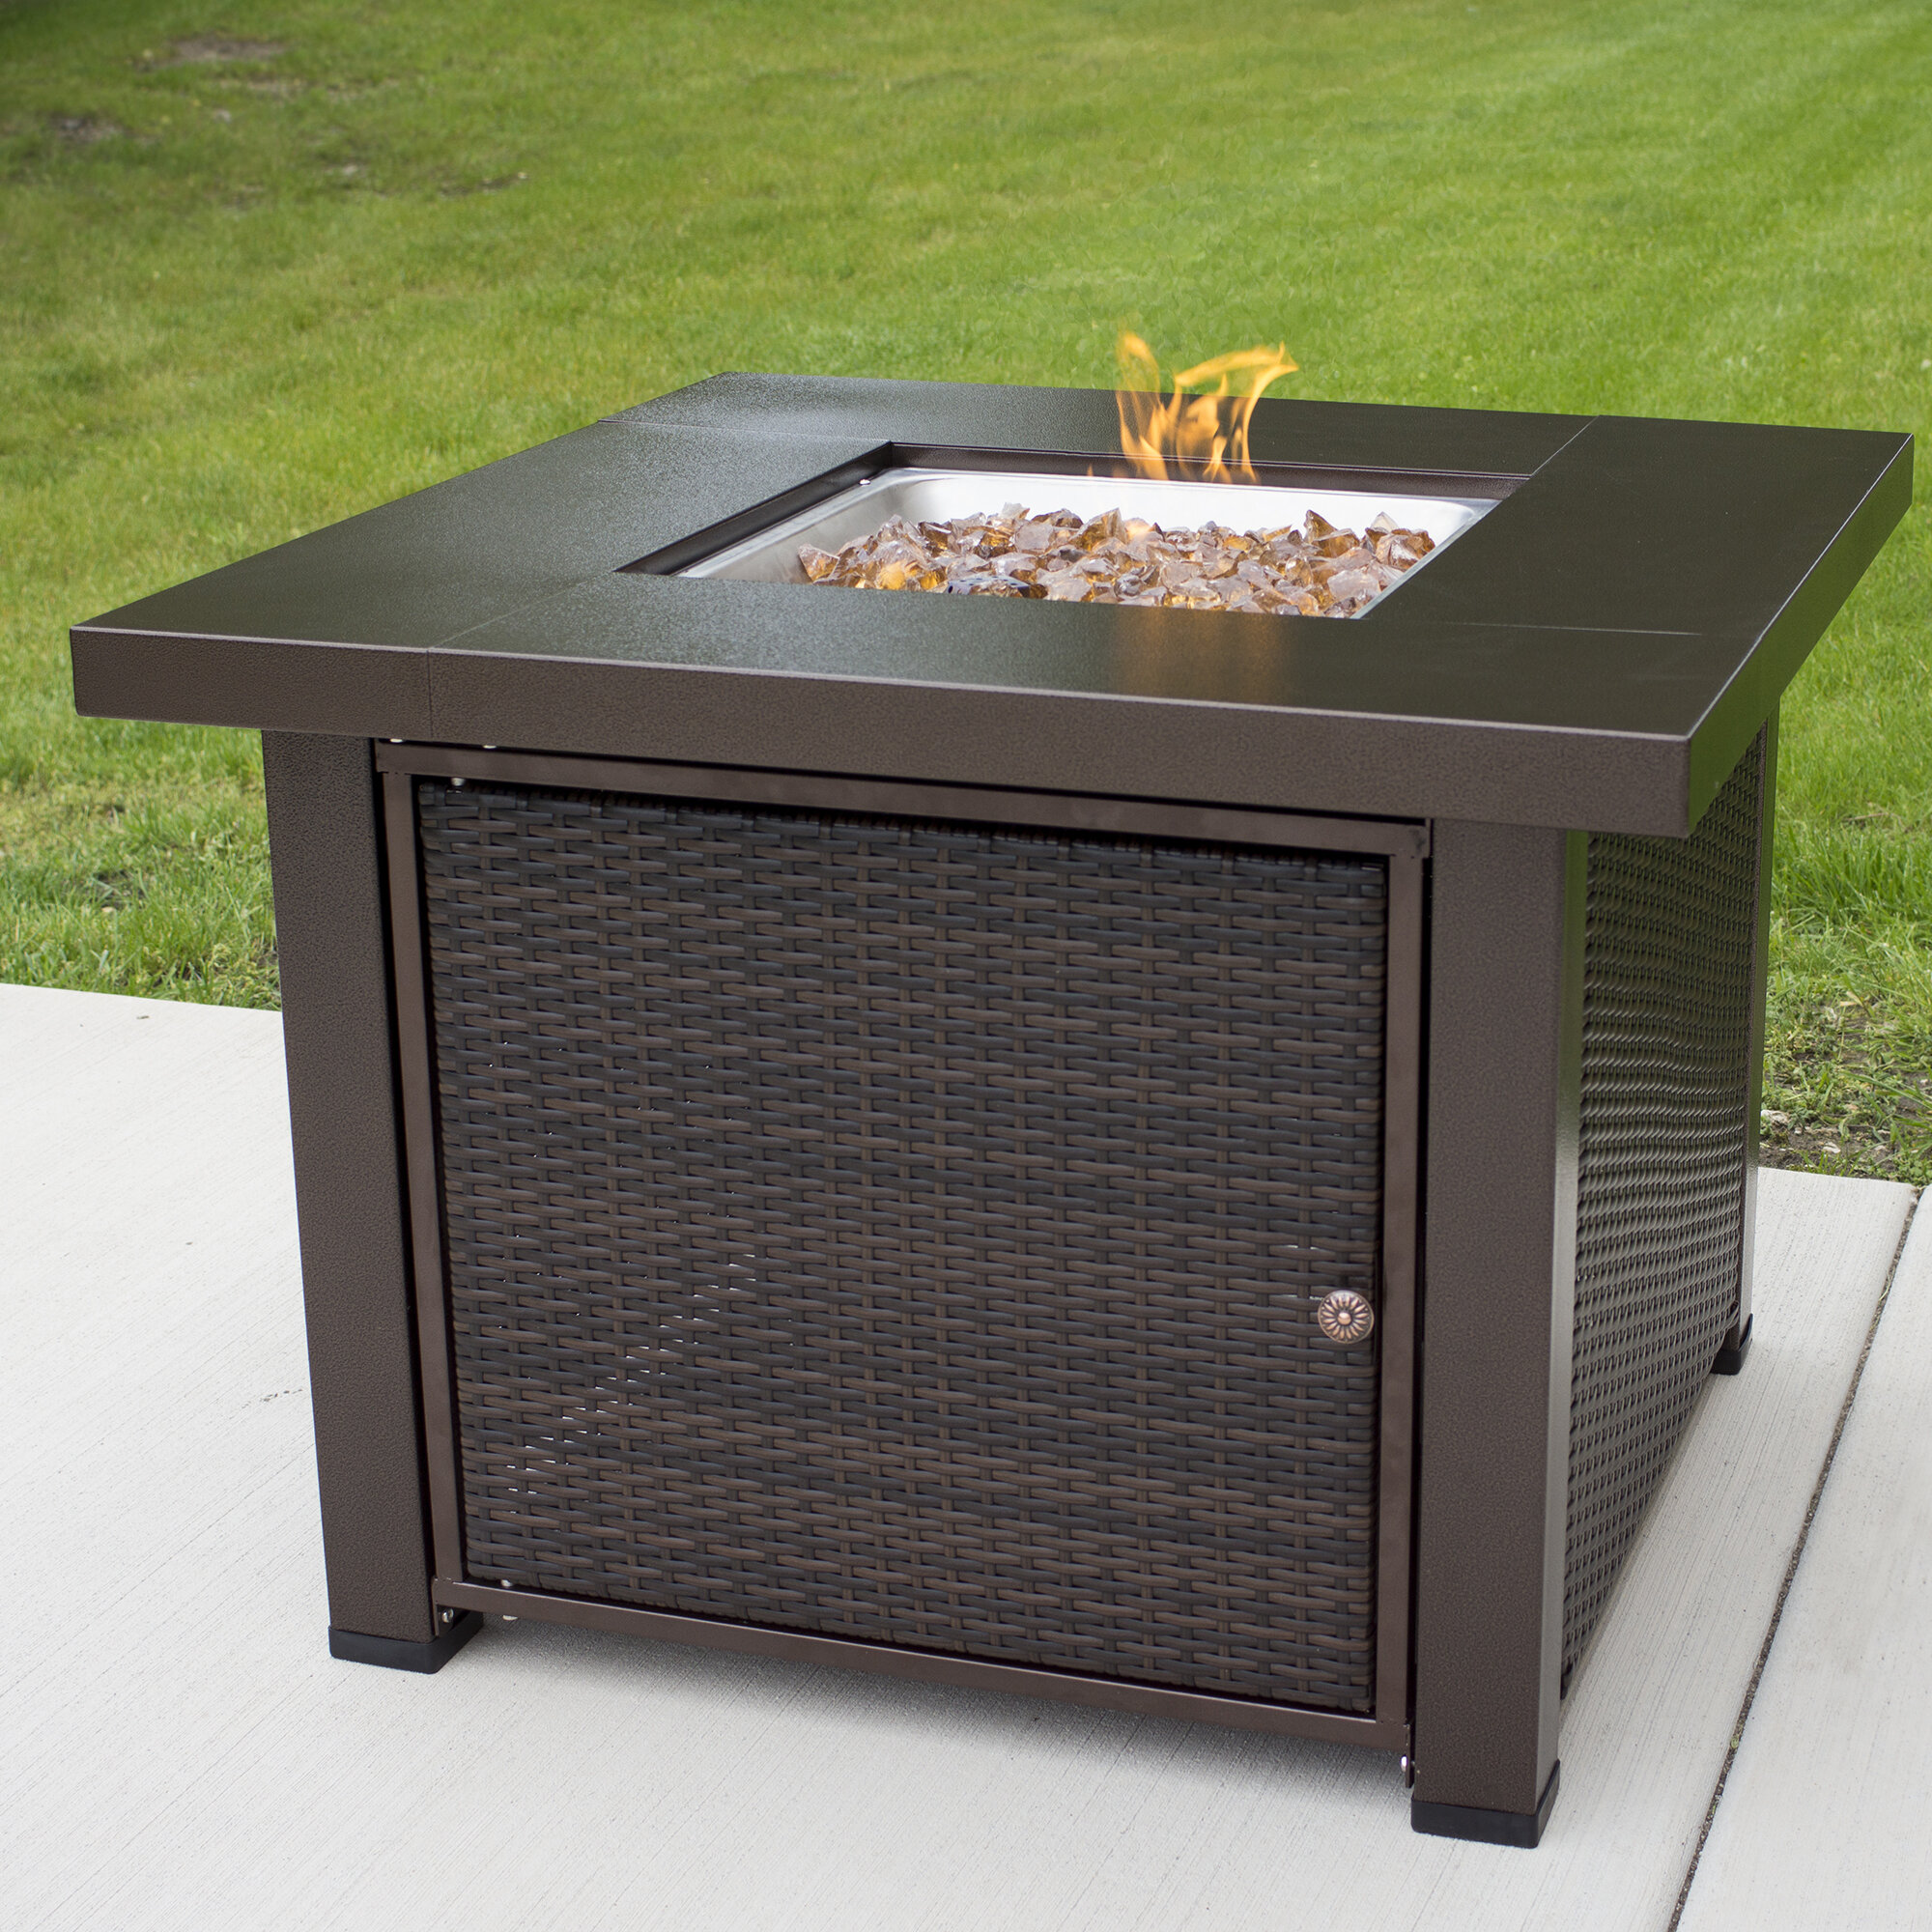 Pleasant hearth rio wicker stainless steel propane fire pit table reviews wayfair